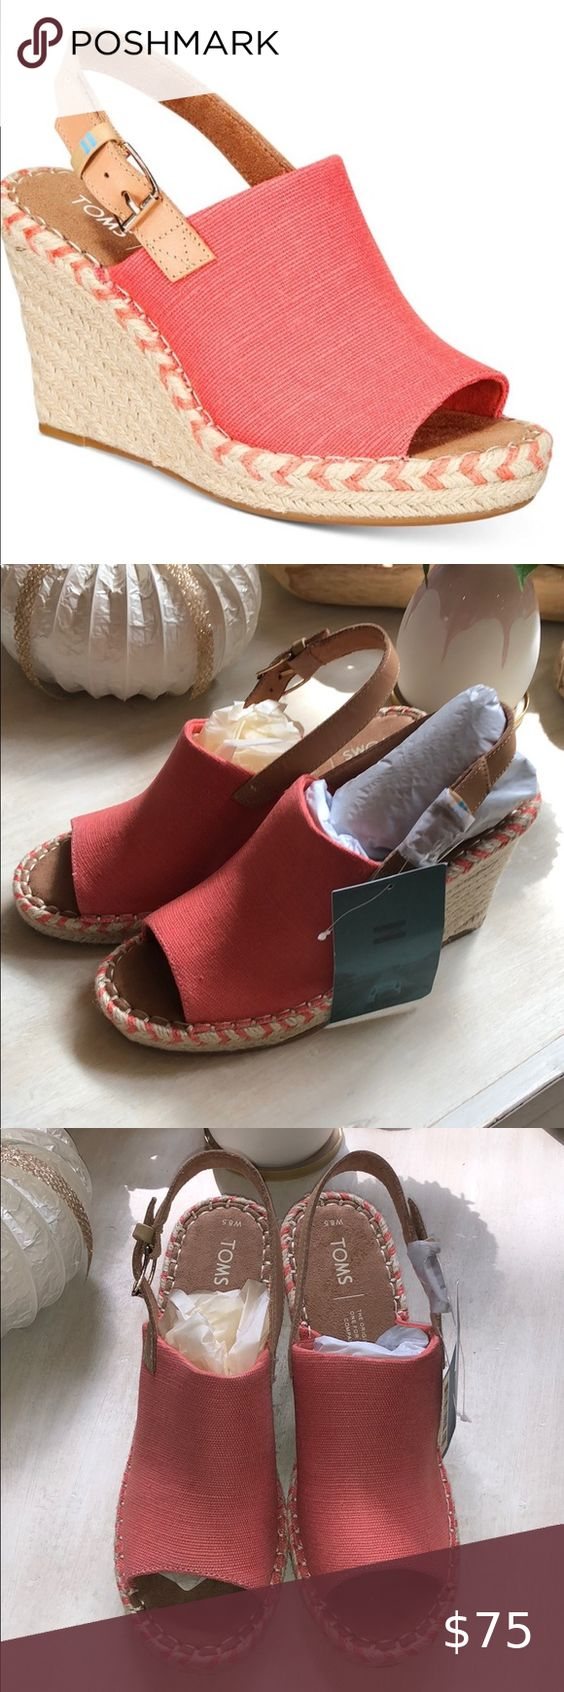 Hp Nib Toms Monica Sling Back Wedges Size 8 5 In 2020 Toms Shoes Wedges Womens Shoes Wedges Wedges